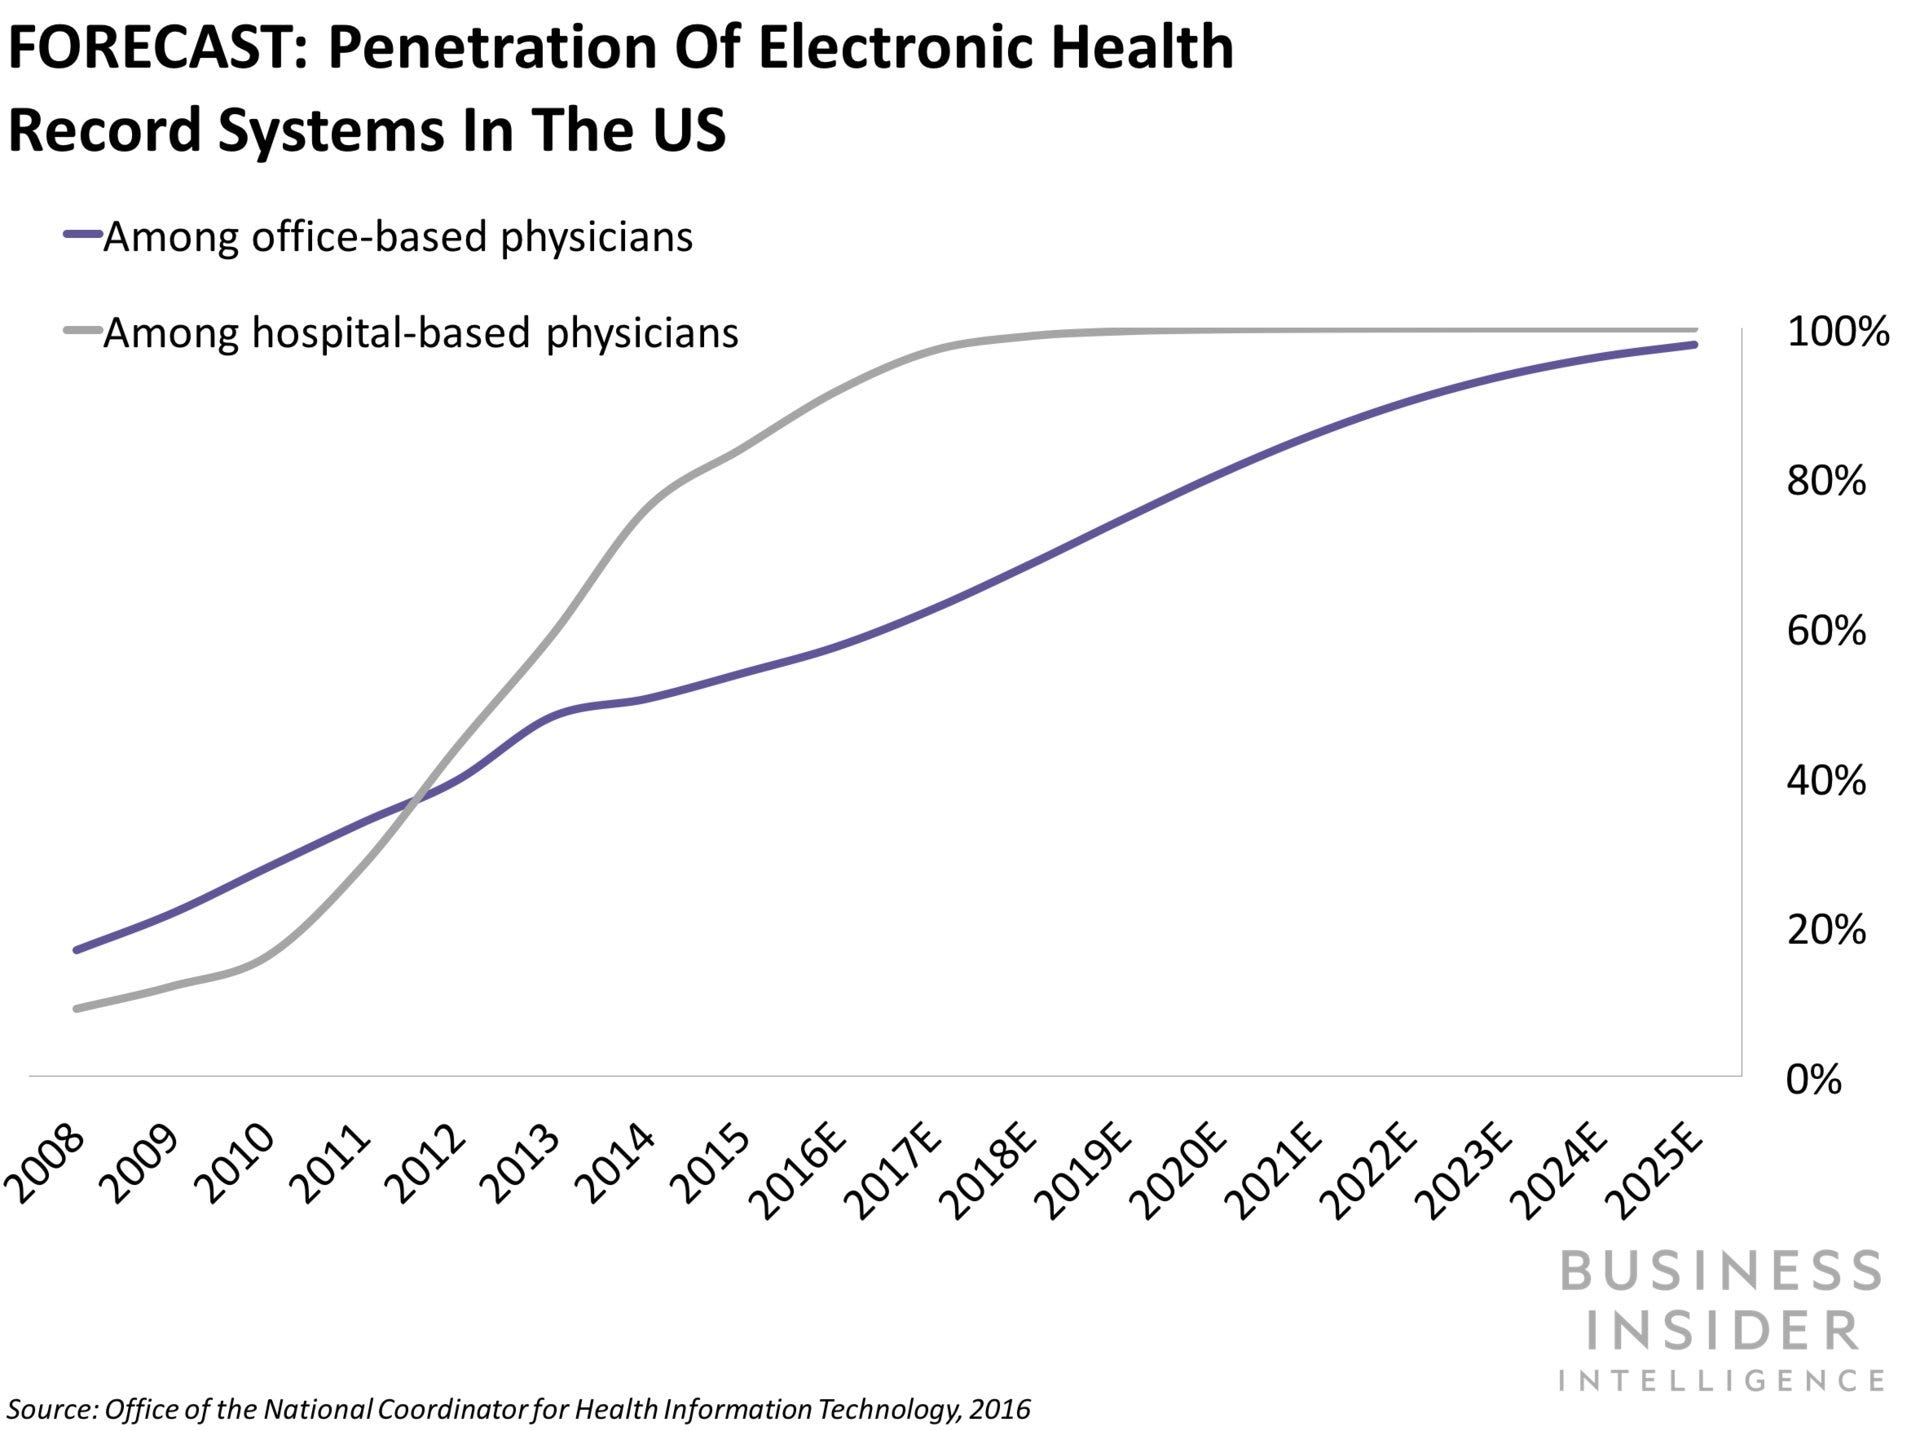 FORECAST: Penetration of Electronic Health Record Systems in the US